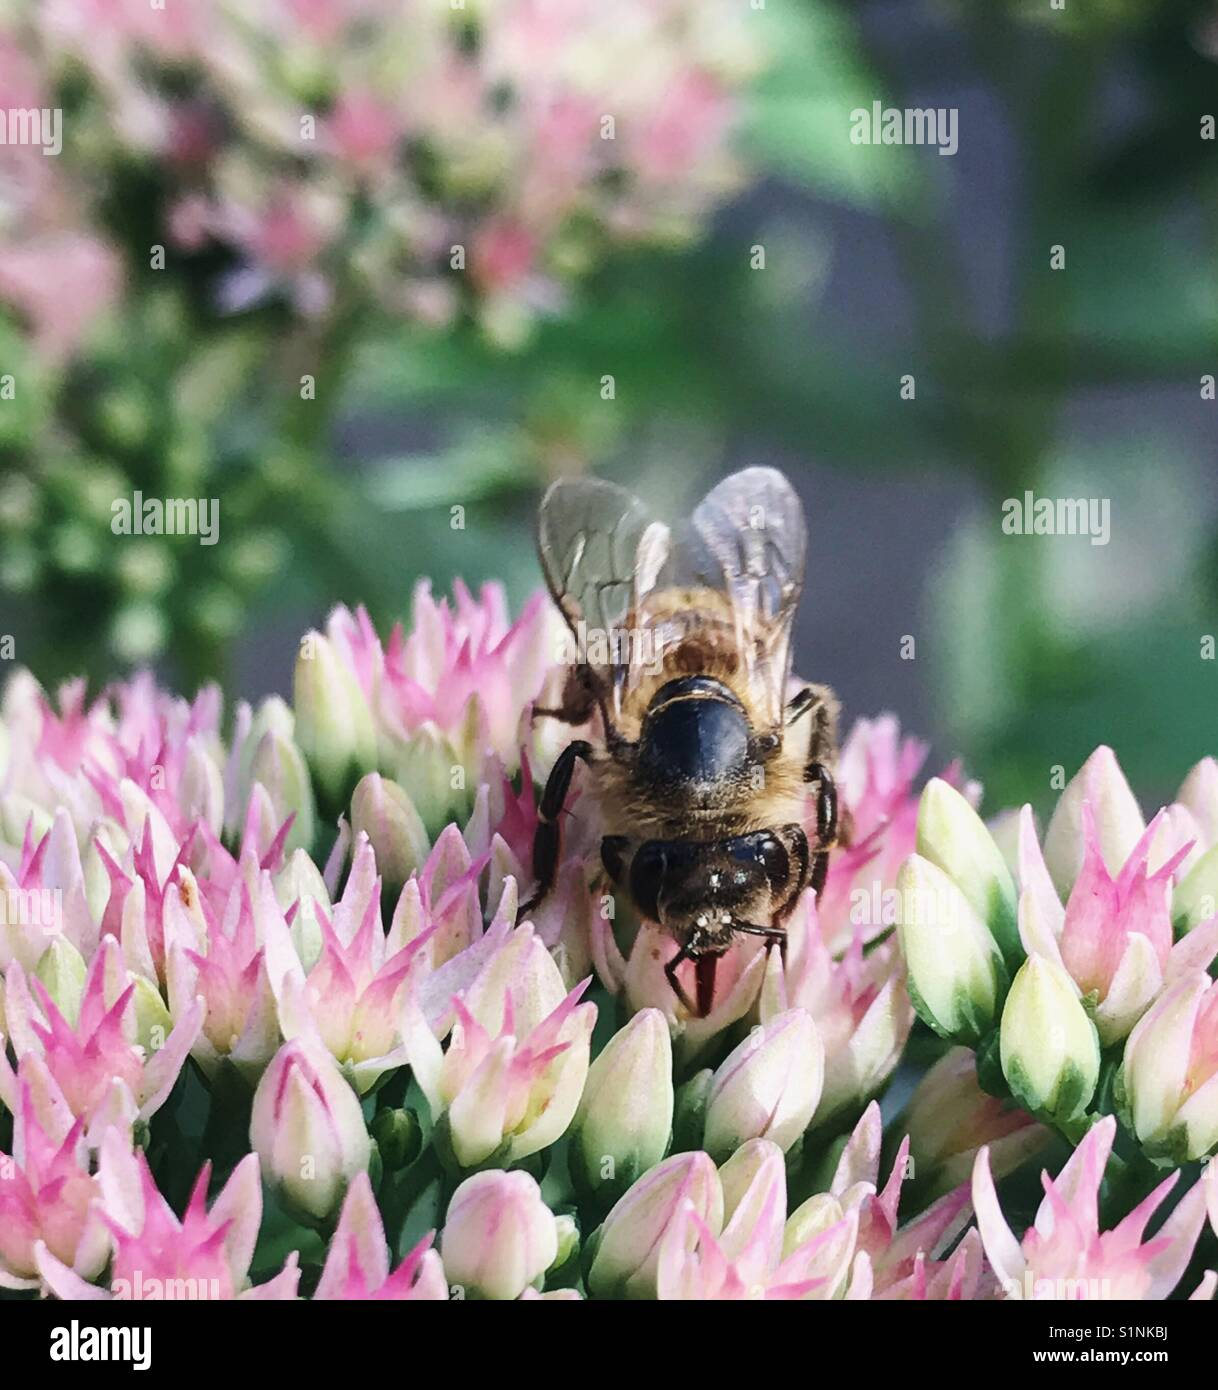 Closeup of a bee on a Bouncing Bess flower - Stock Image